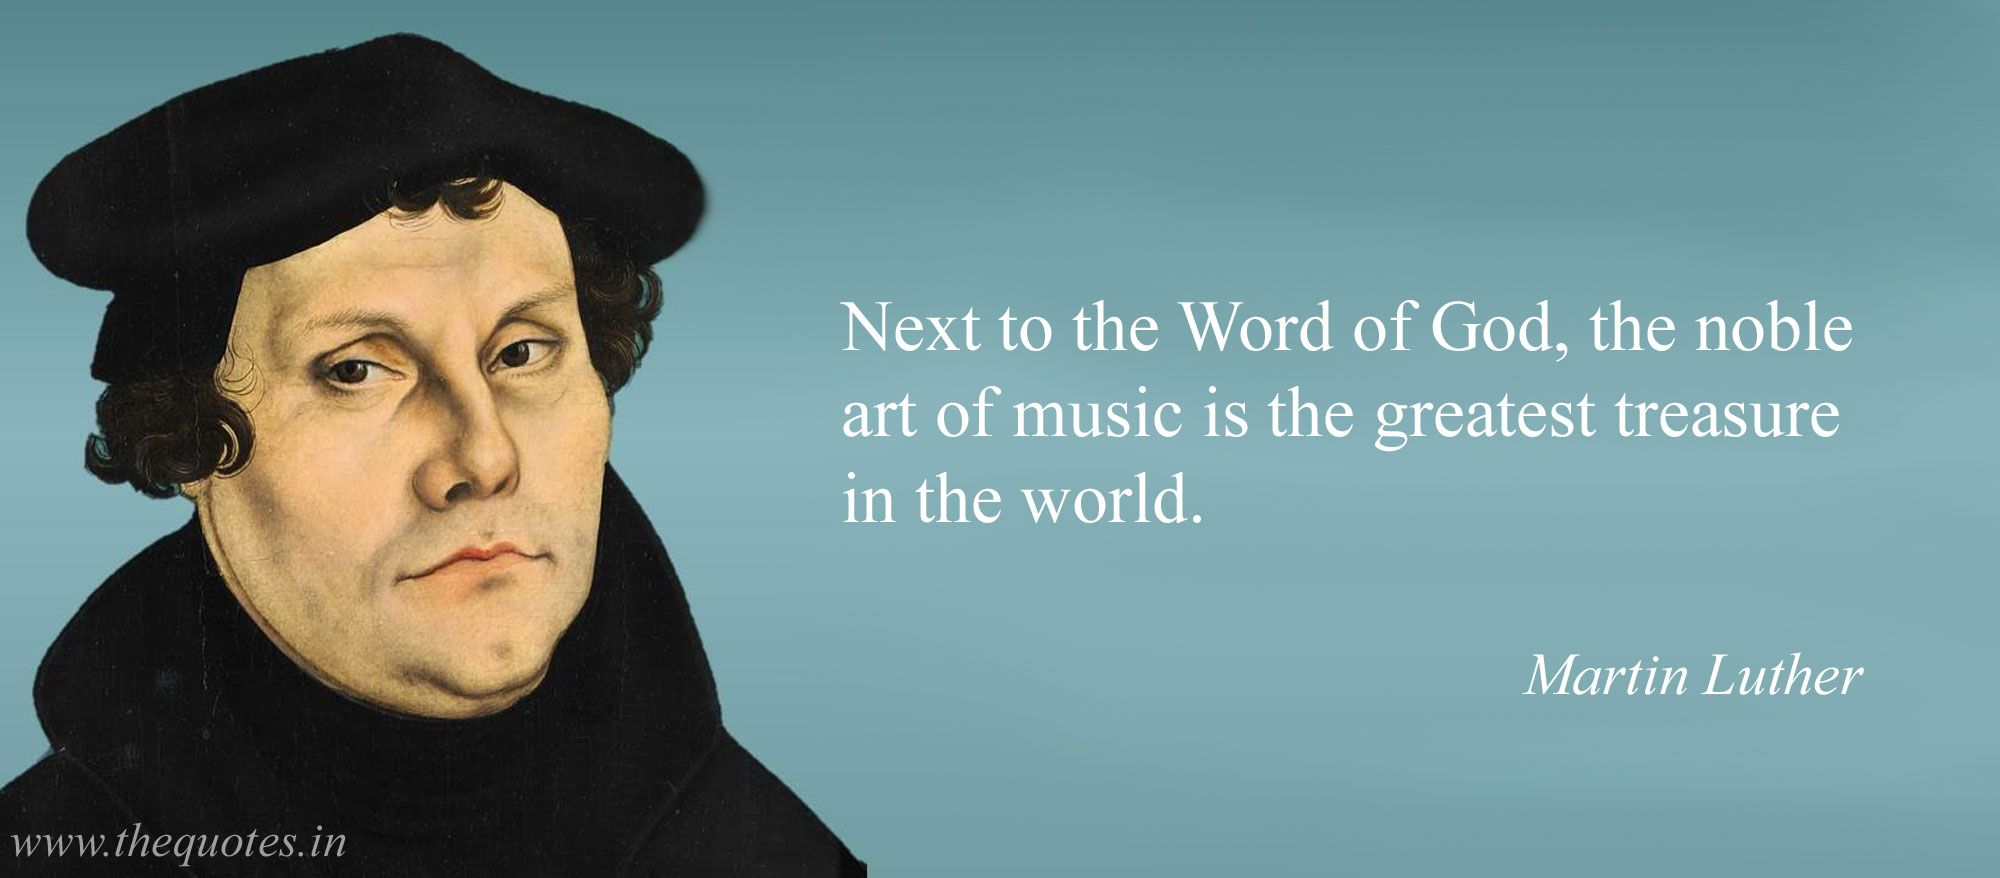 Quotes From Martin Luther The Reformer